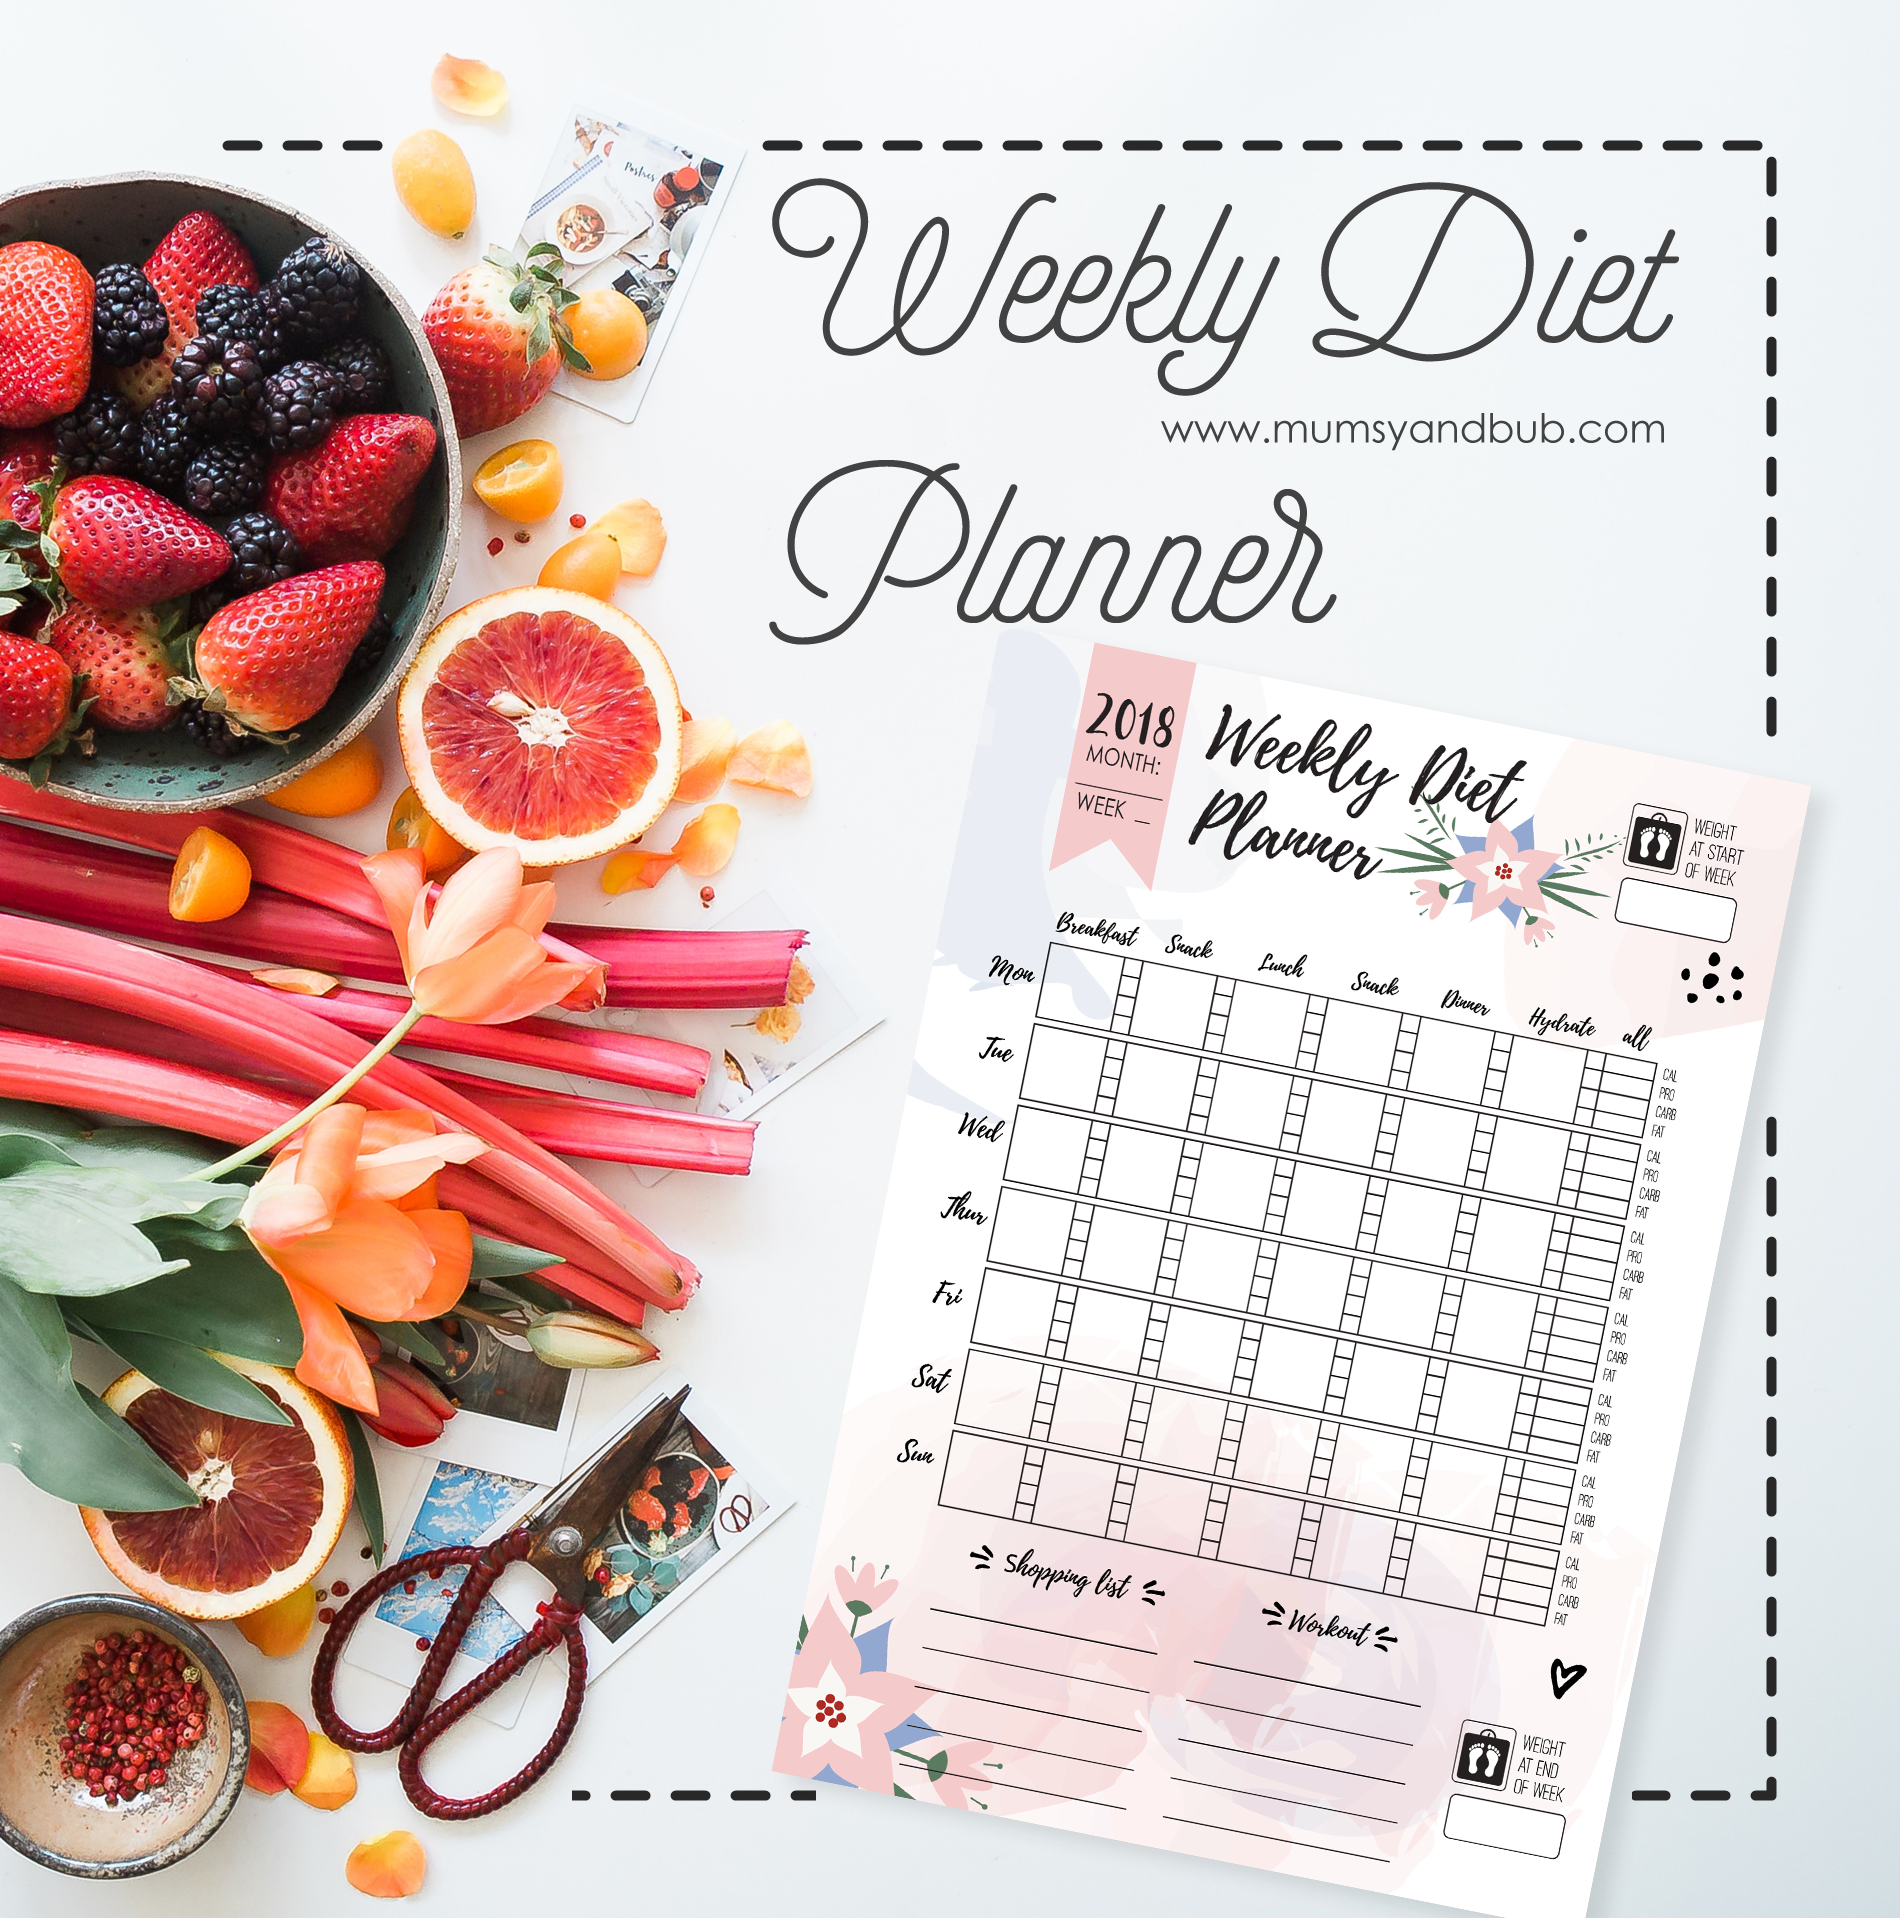 weekly diet planner printable template mumsy and bub